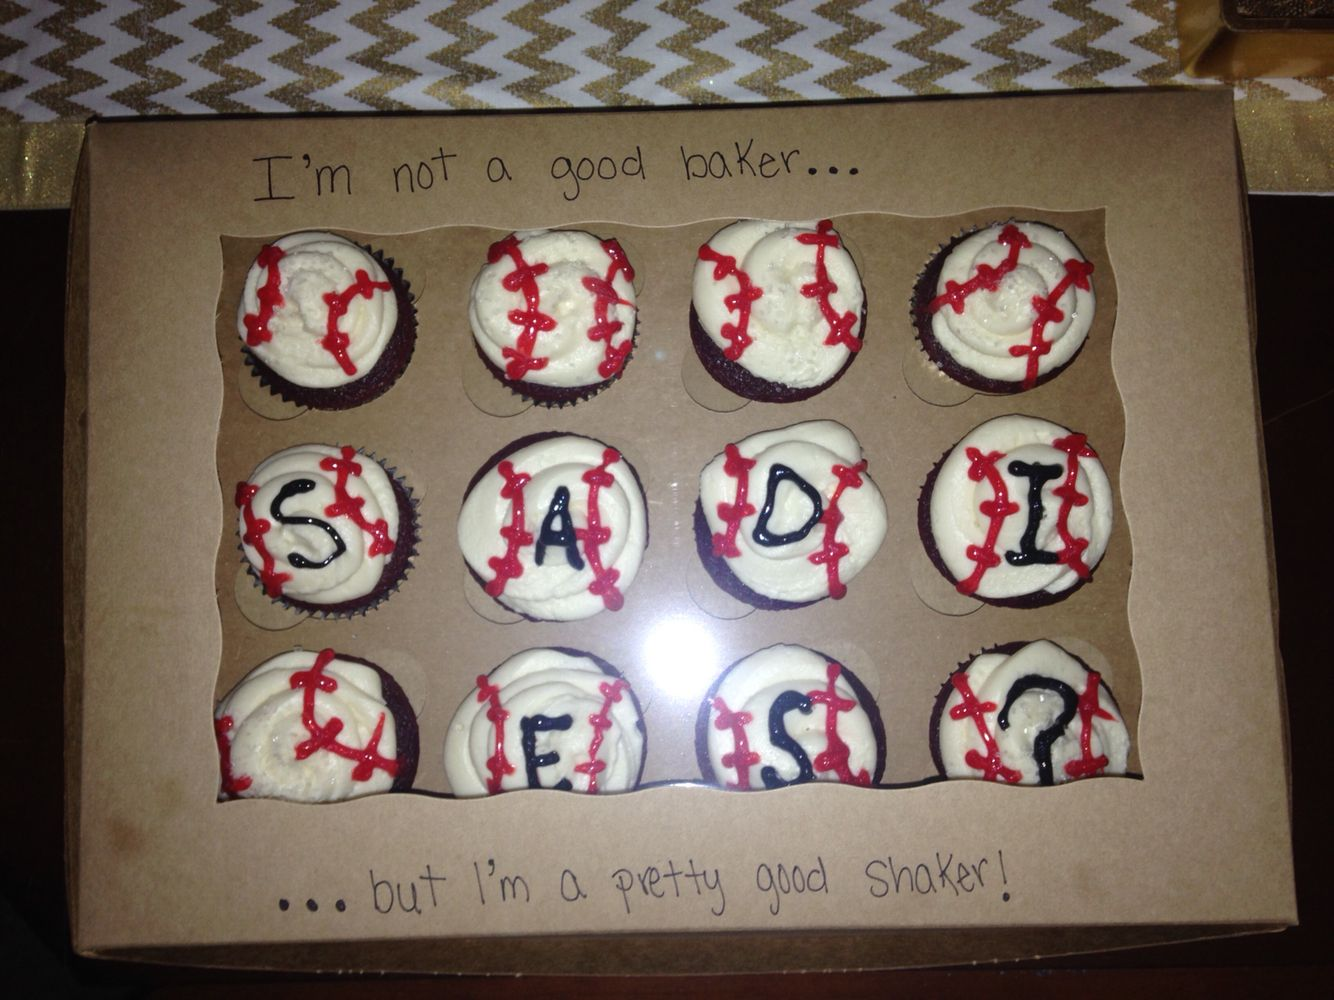 Cute ideas to ask a boy to sadie hawkins - How To Ask A Baseball Player To Sadies Sadies